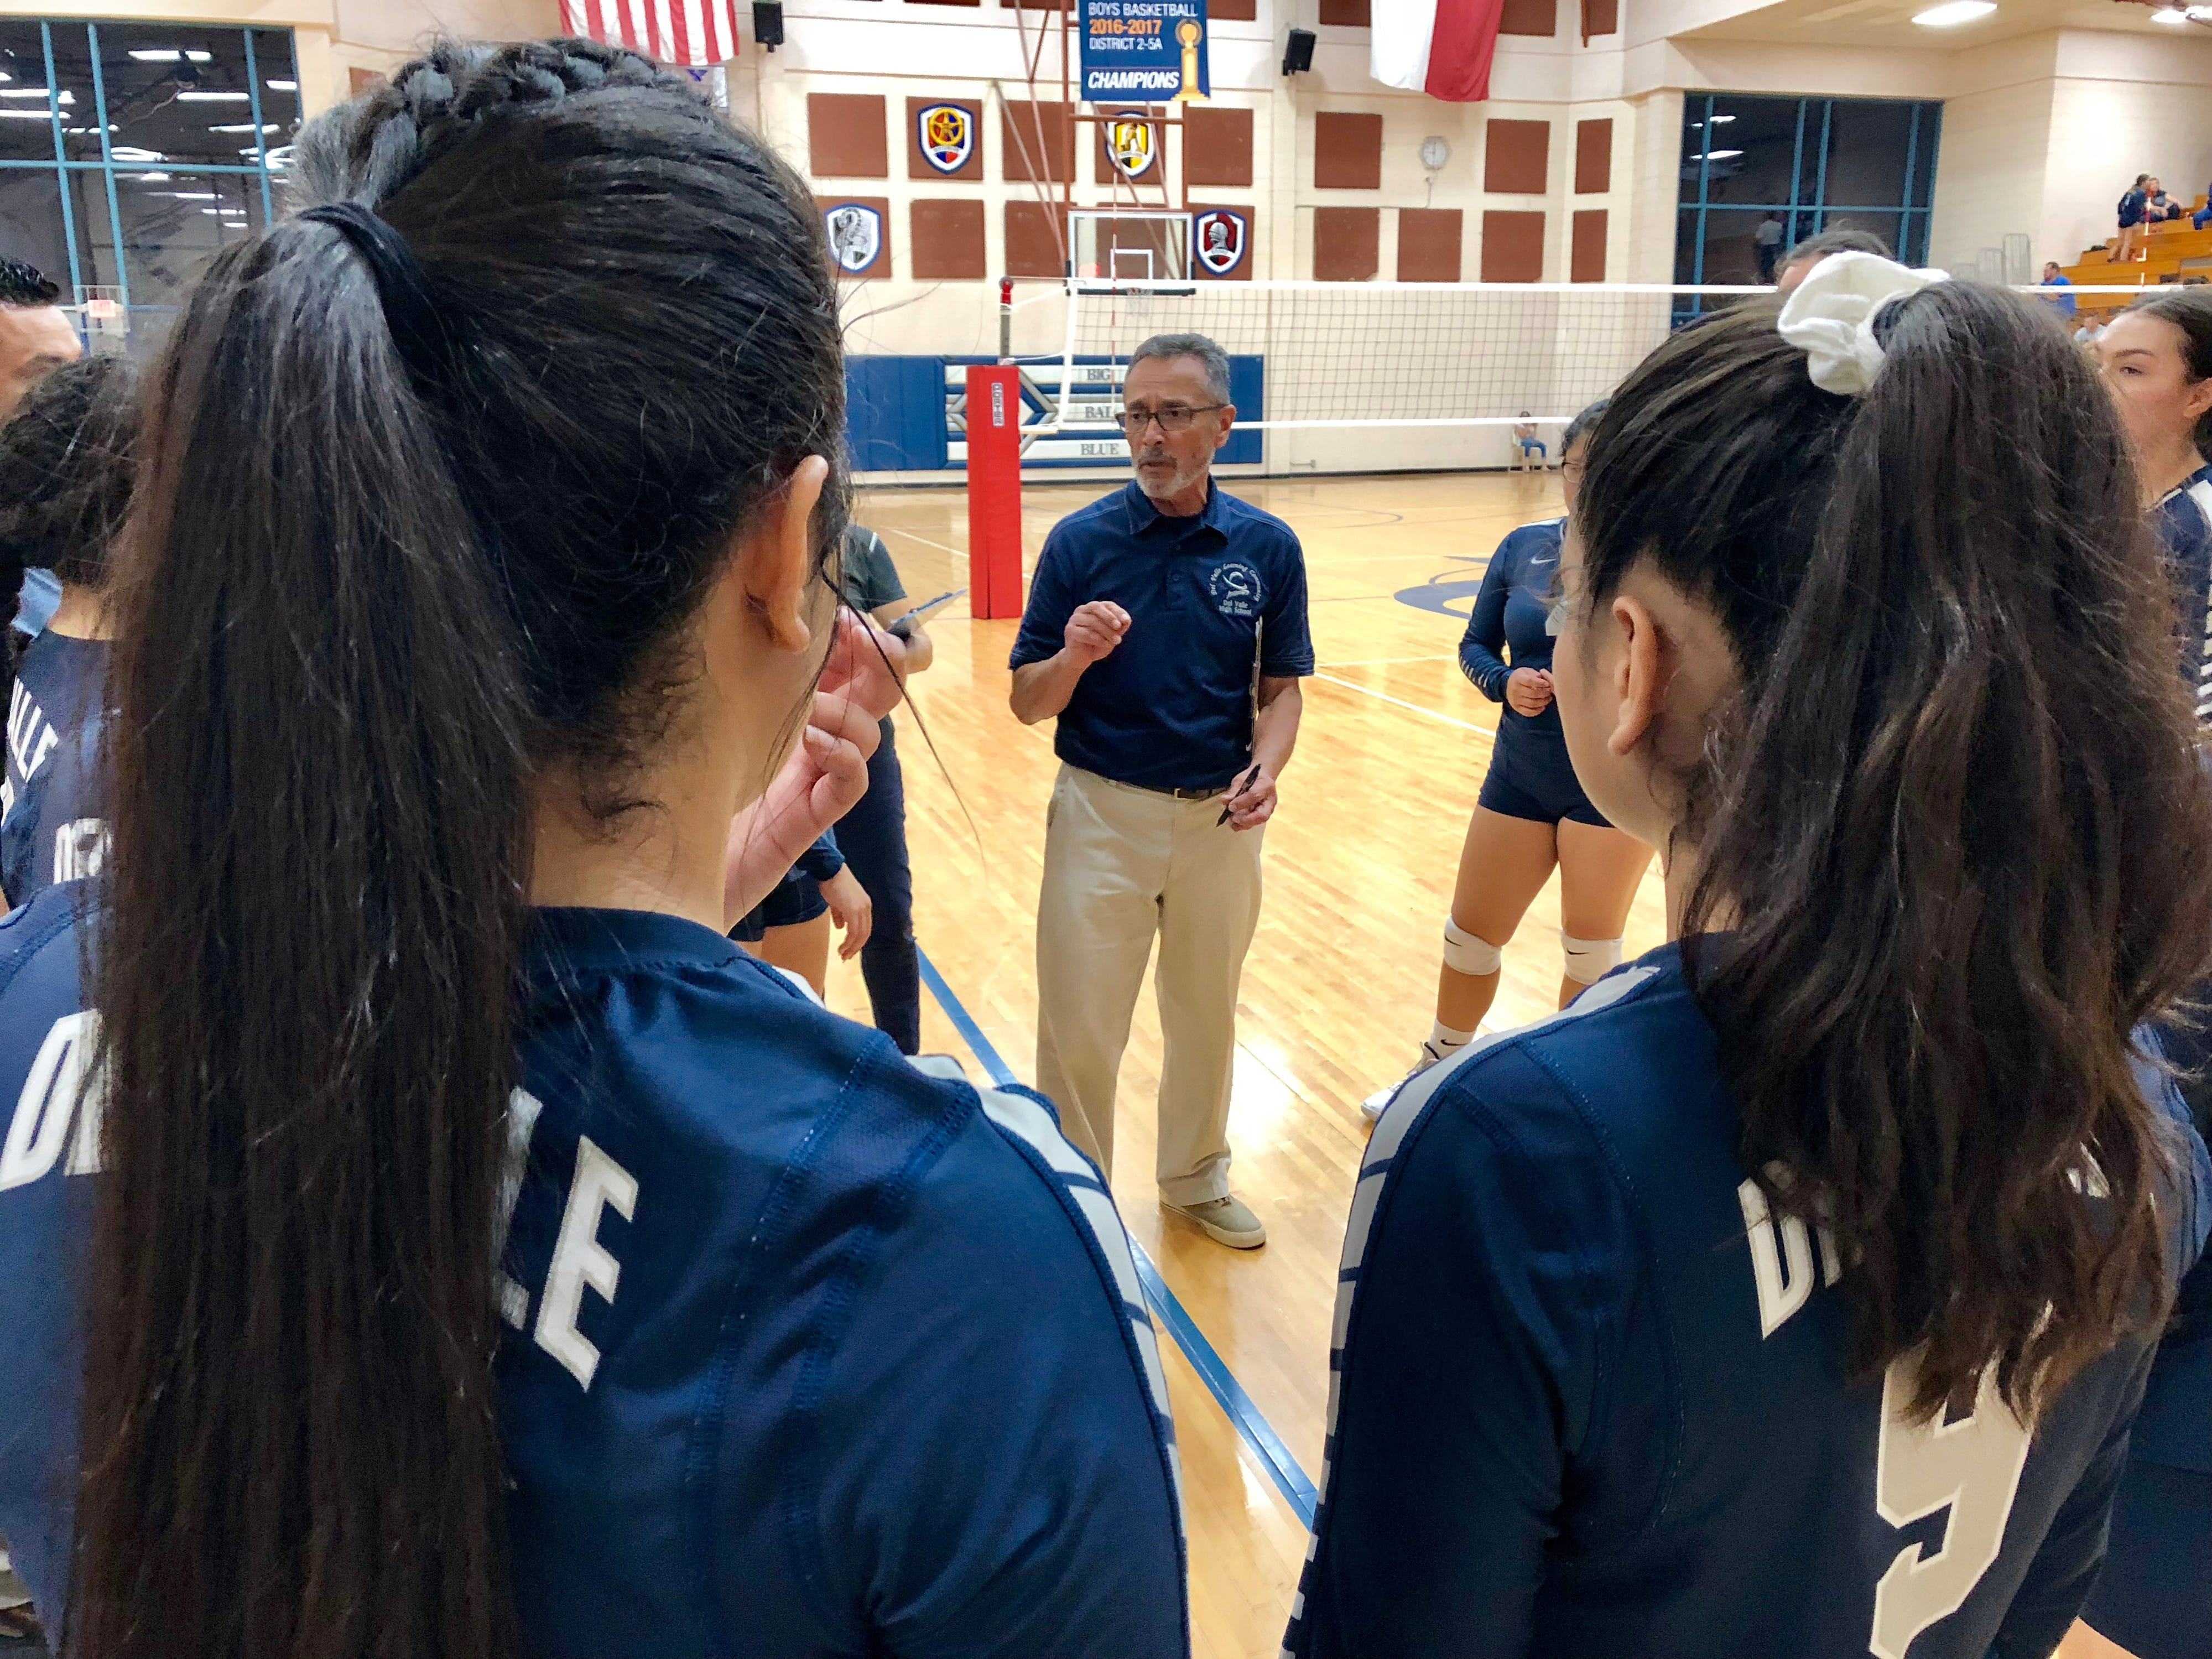 Del Valle coach Jesse Lugo meets with his team after they lost their first set against El Dorado Tuesday night.